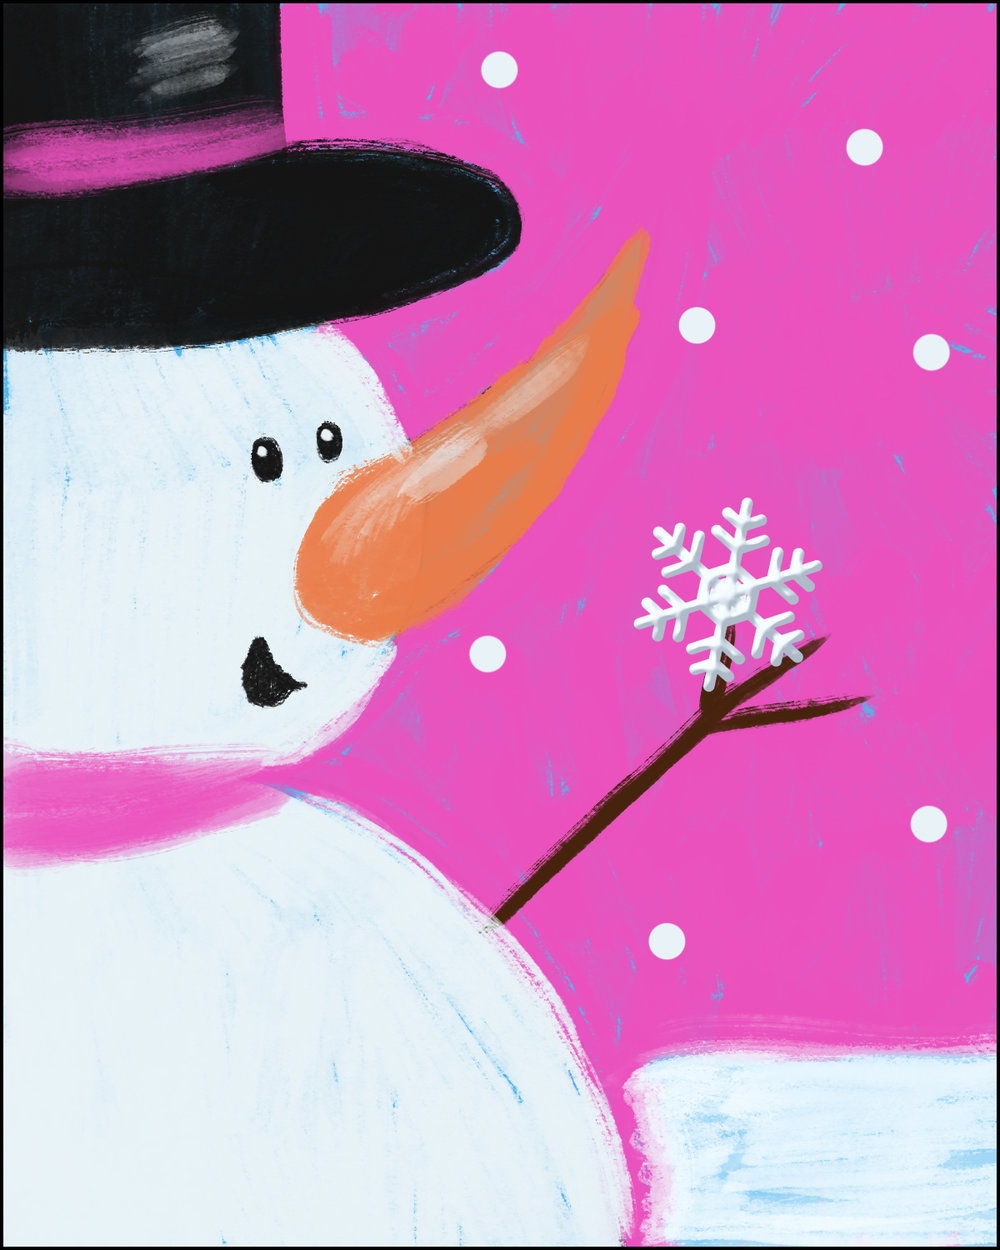 Step 15: Glue Snowflake Accessory onto Snowman's Hand